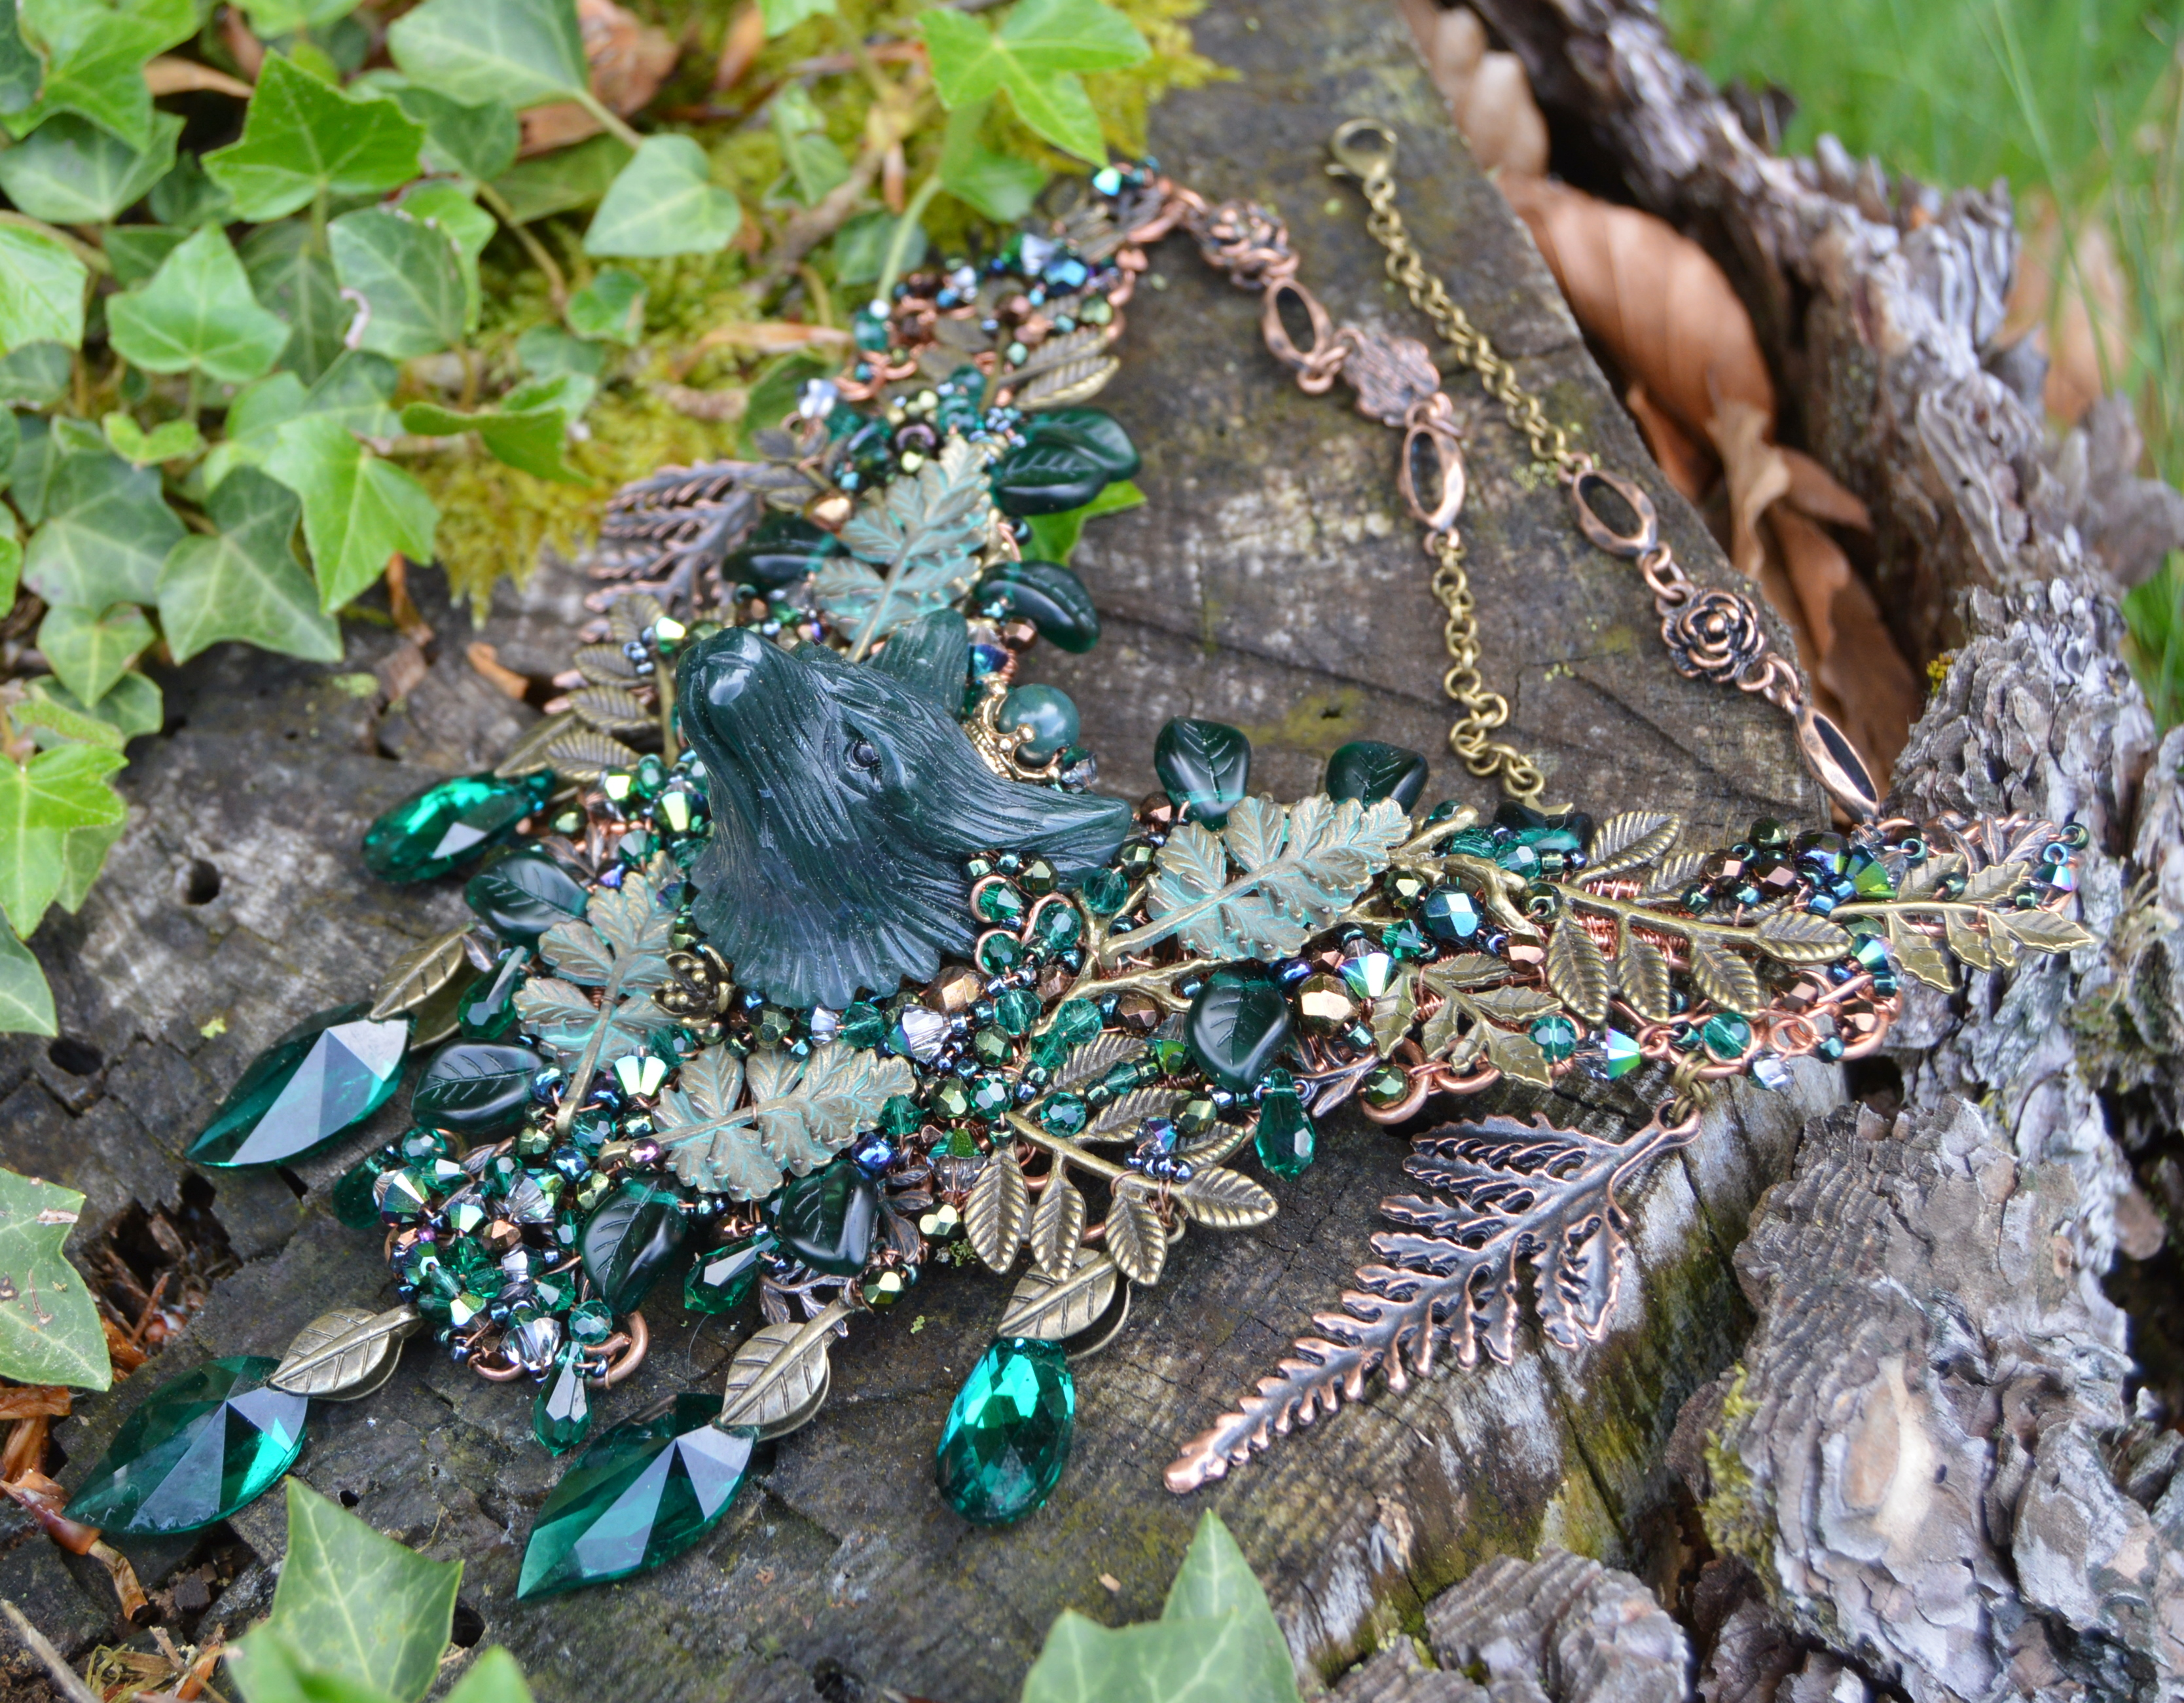 Witchy wolf necklace in moss agate and Swarovski crystals forest Queen green witch wiccan jewelry by Herisson Rose